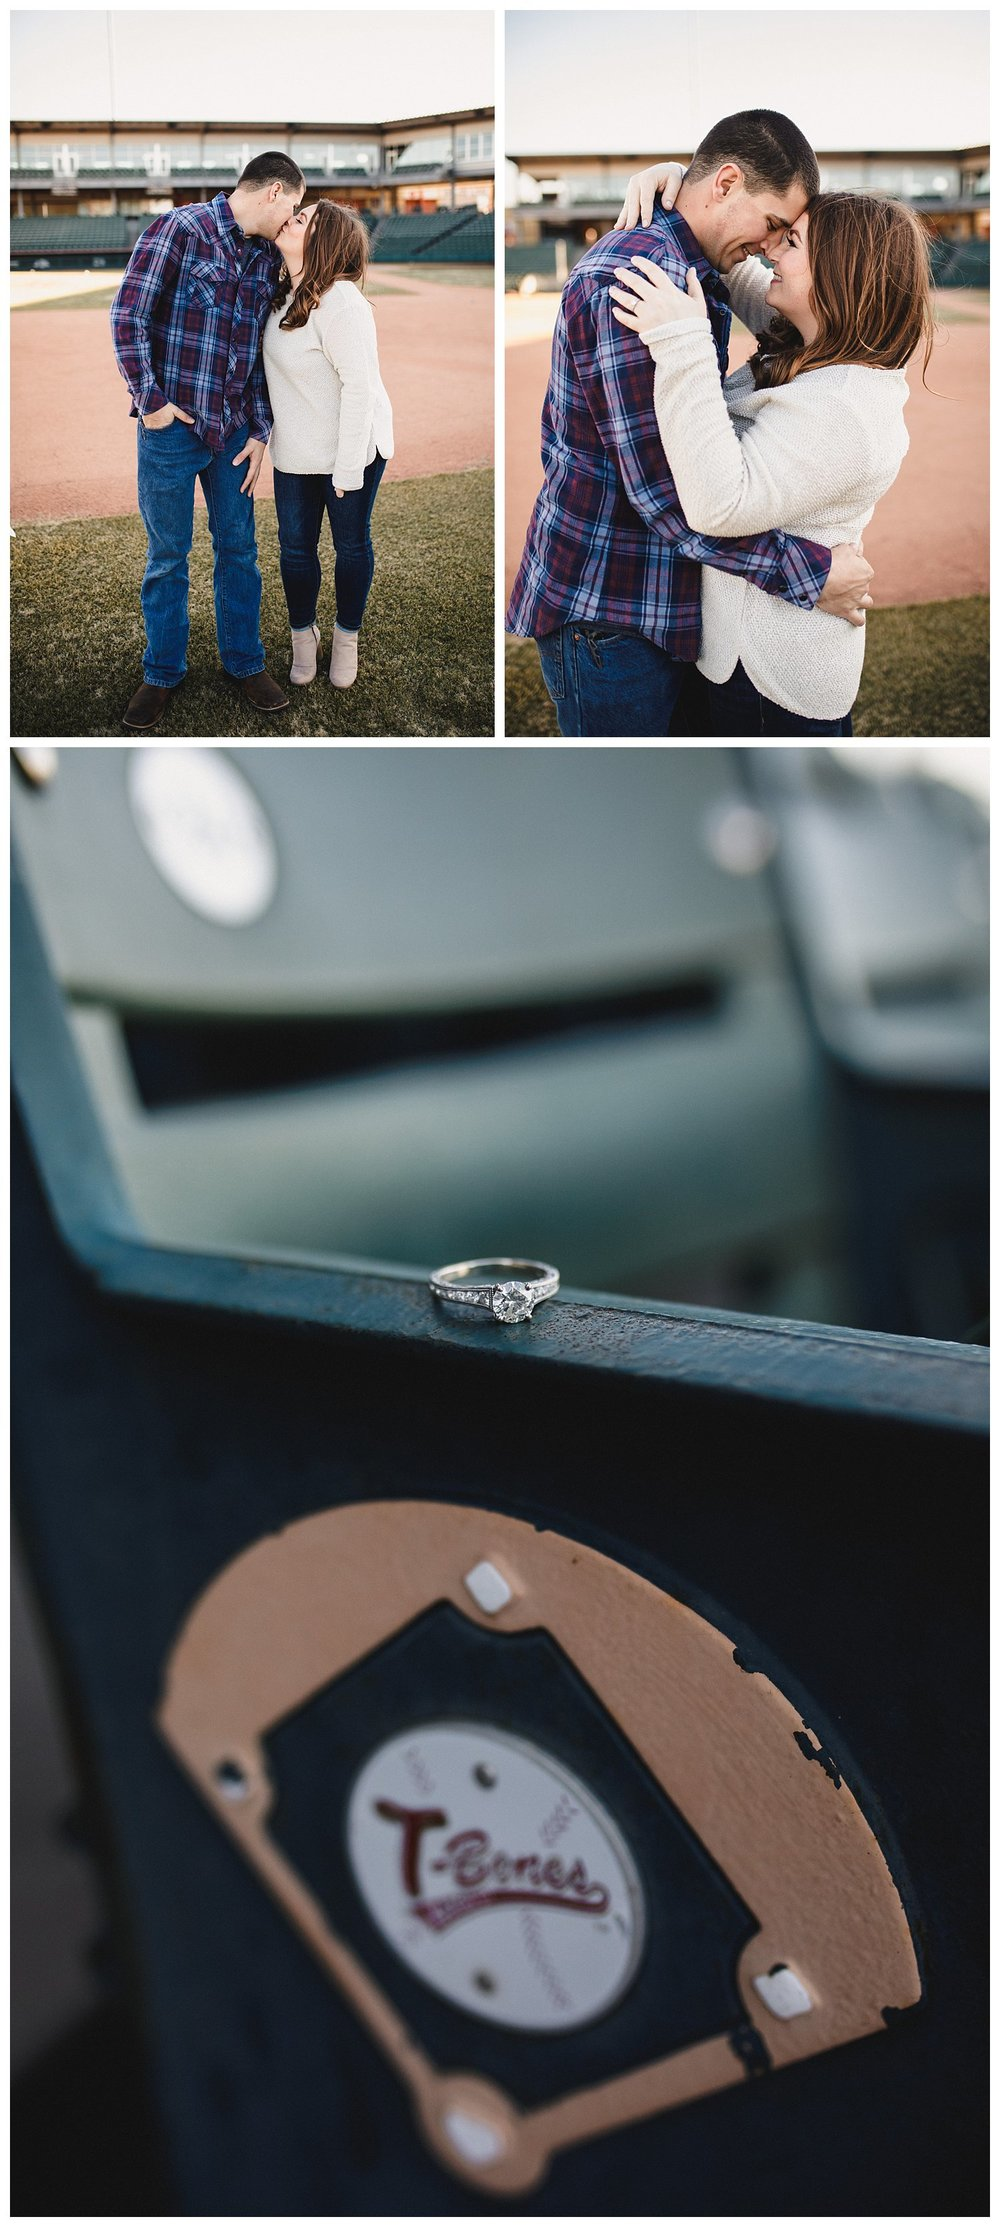 Kelsey_Diane_Photography_T-Bones_Stadium_Kansas_Wandering_Adventourus_Kansas_City_Engagement_0096.jpg